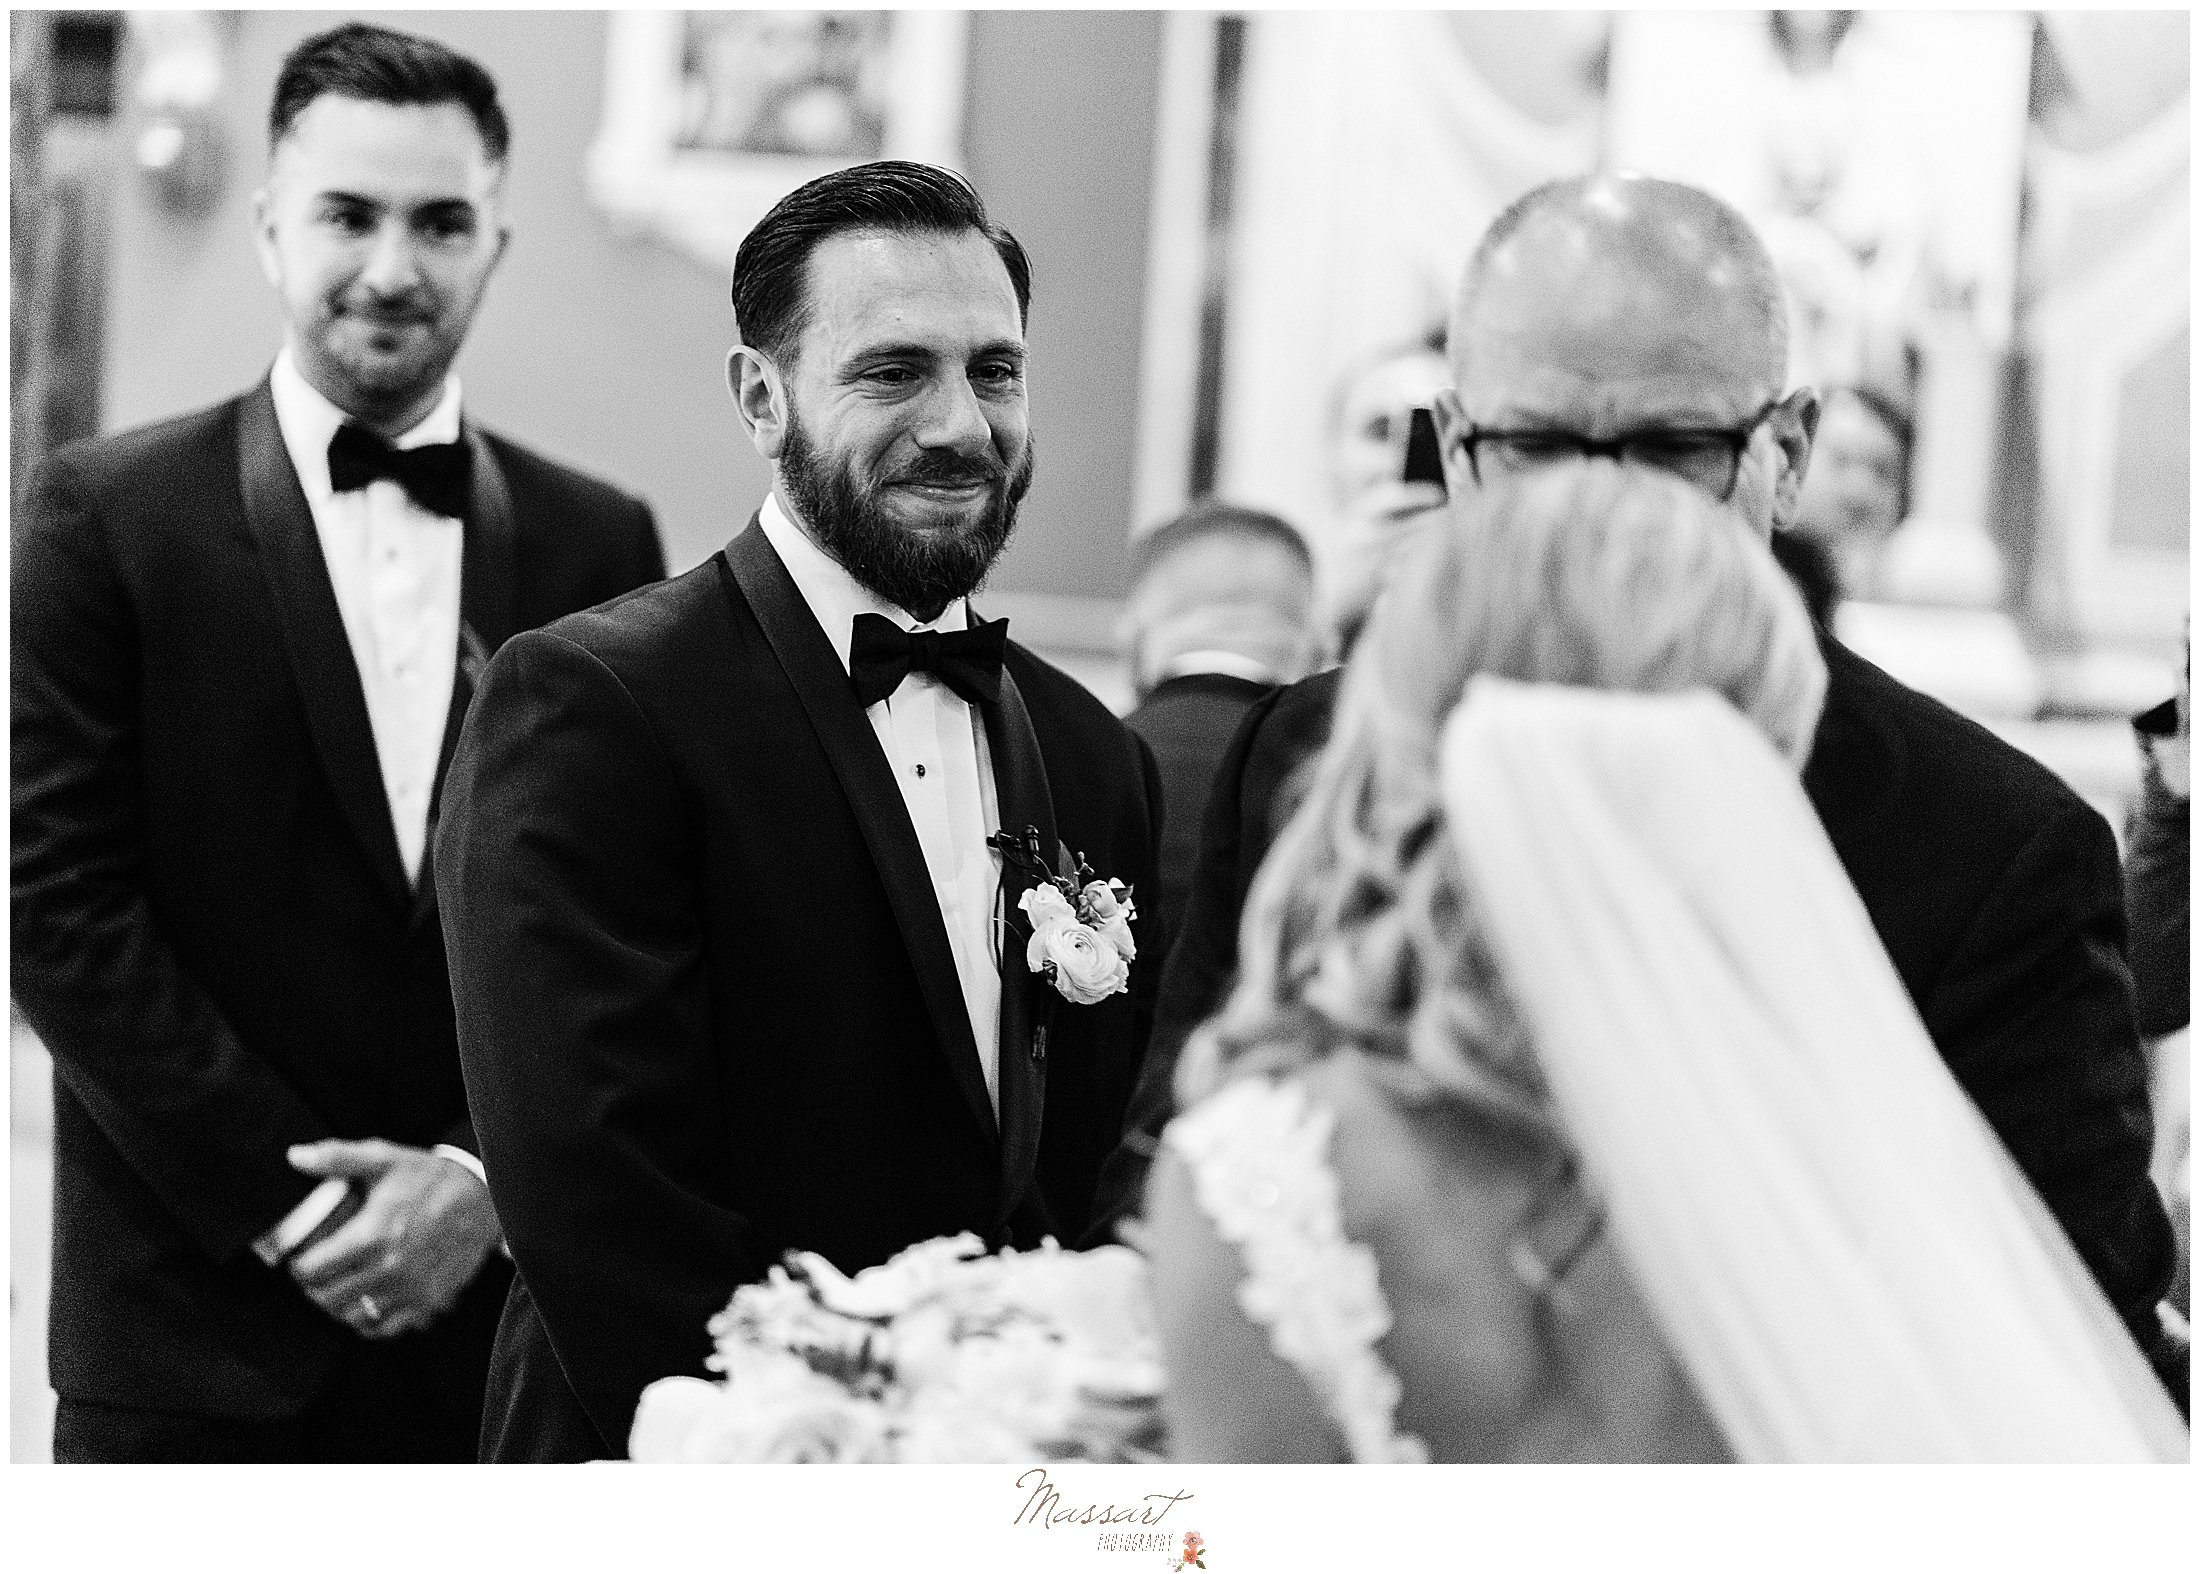 groom looks at bride during wedding ceremony at St. Mary's Catholic Church